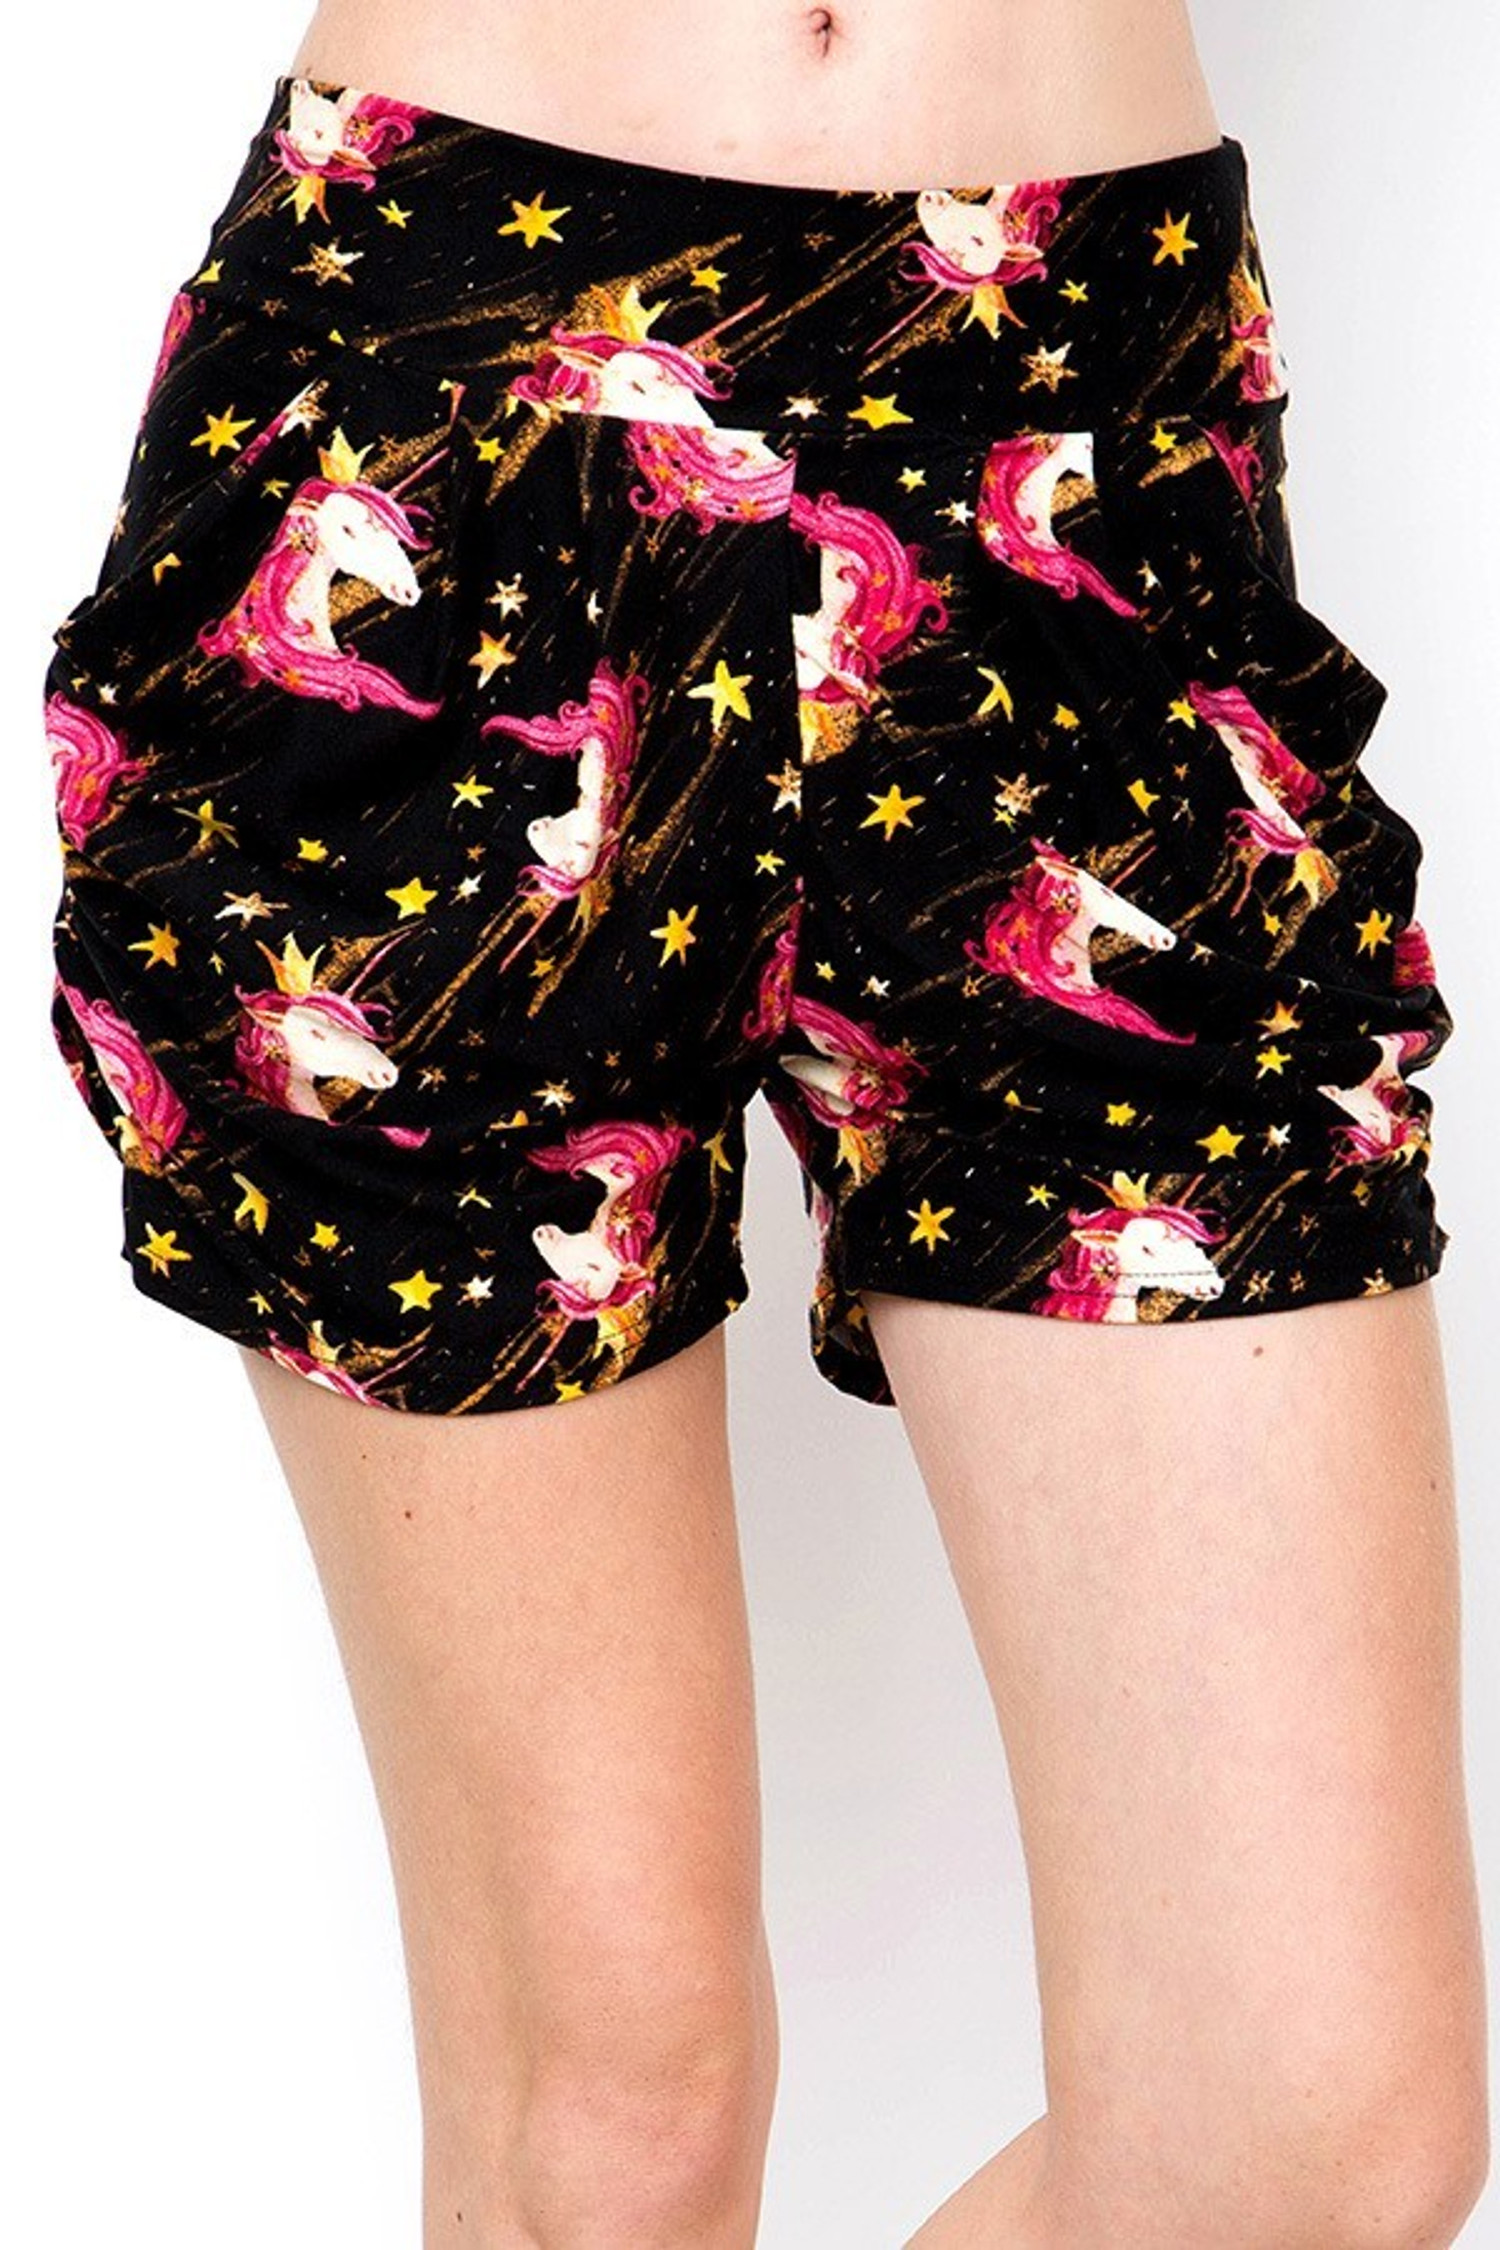 Brushed Twinkle Unicorn Shorts